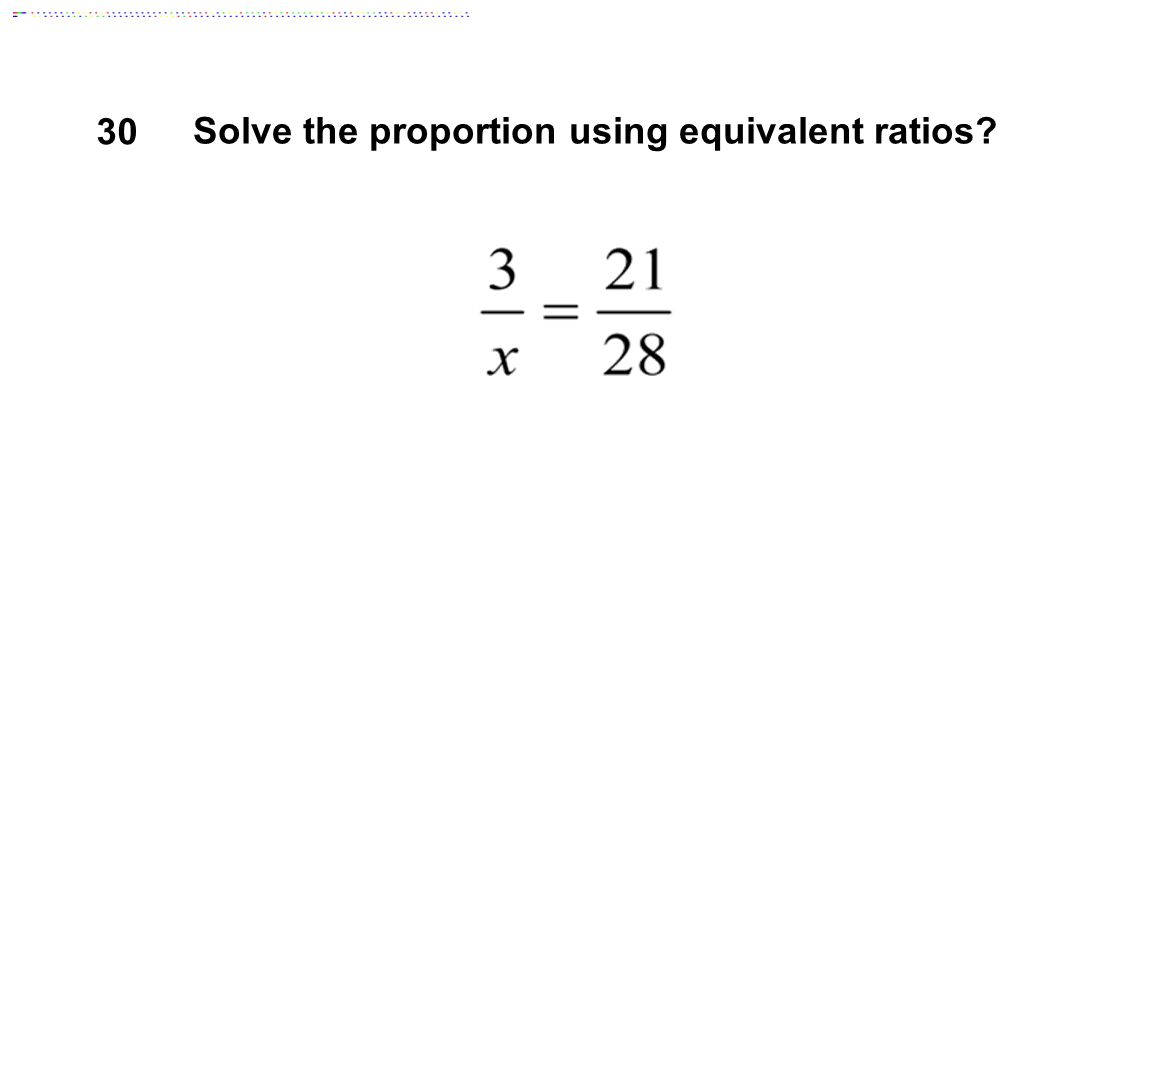 30 Solve the proportion using equivalent ratios?